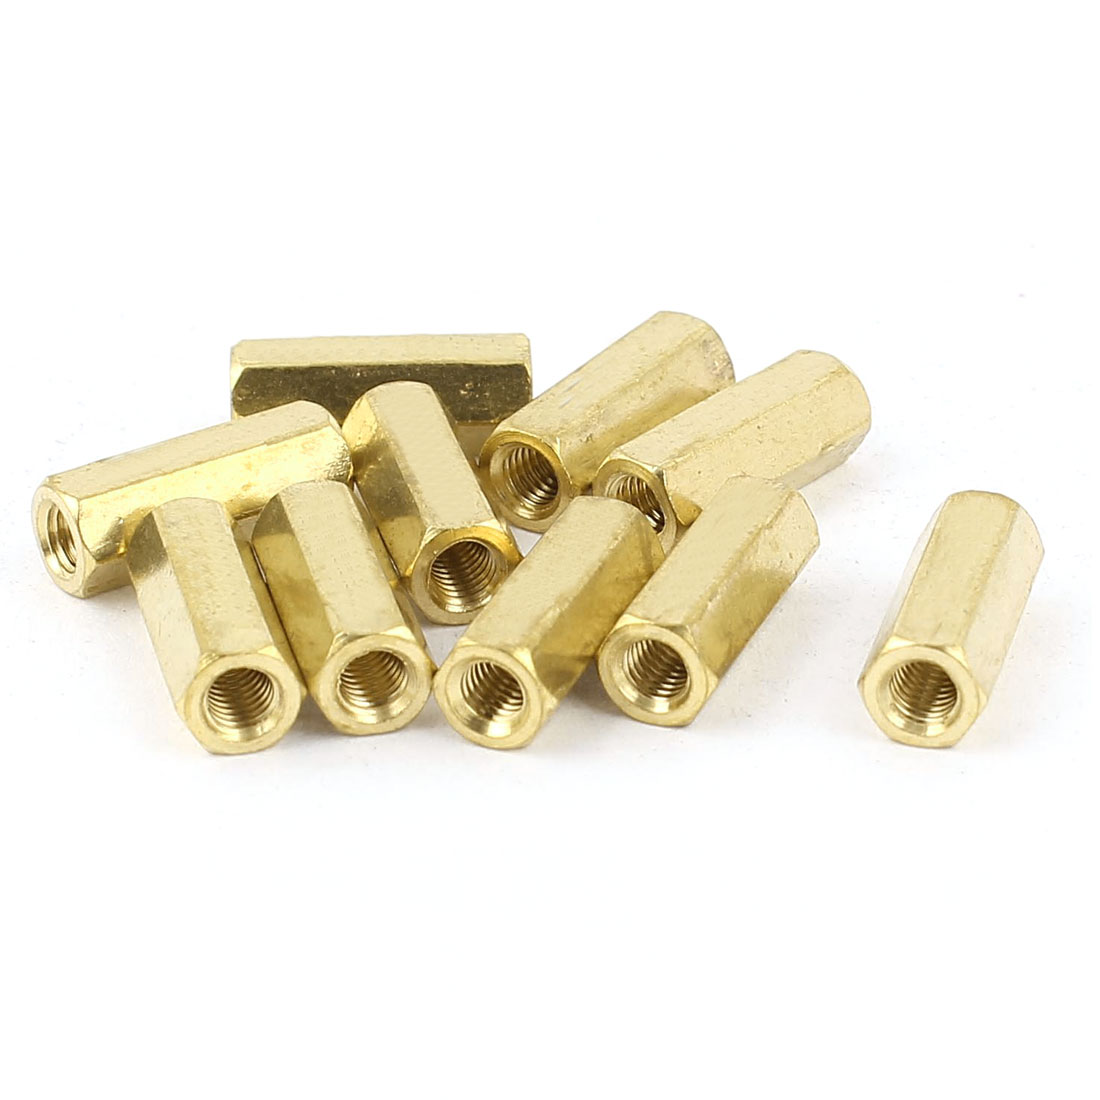 M3 x 13mm Female/Female Thread Brass Hex Standoff PCB Pillar Spacer 10pcs